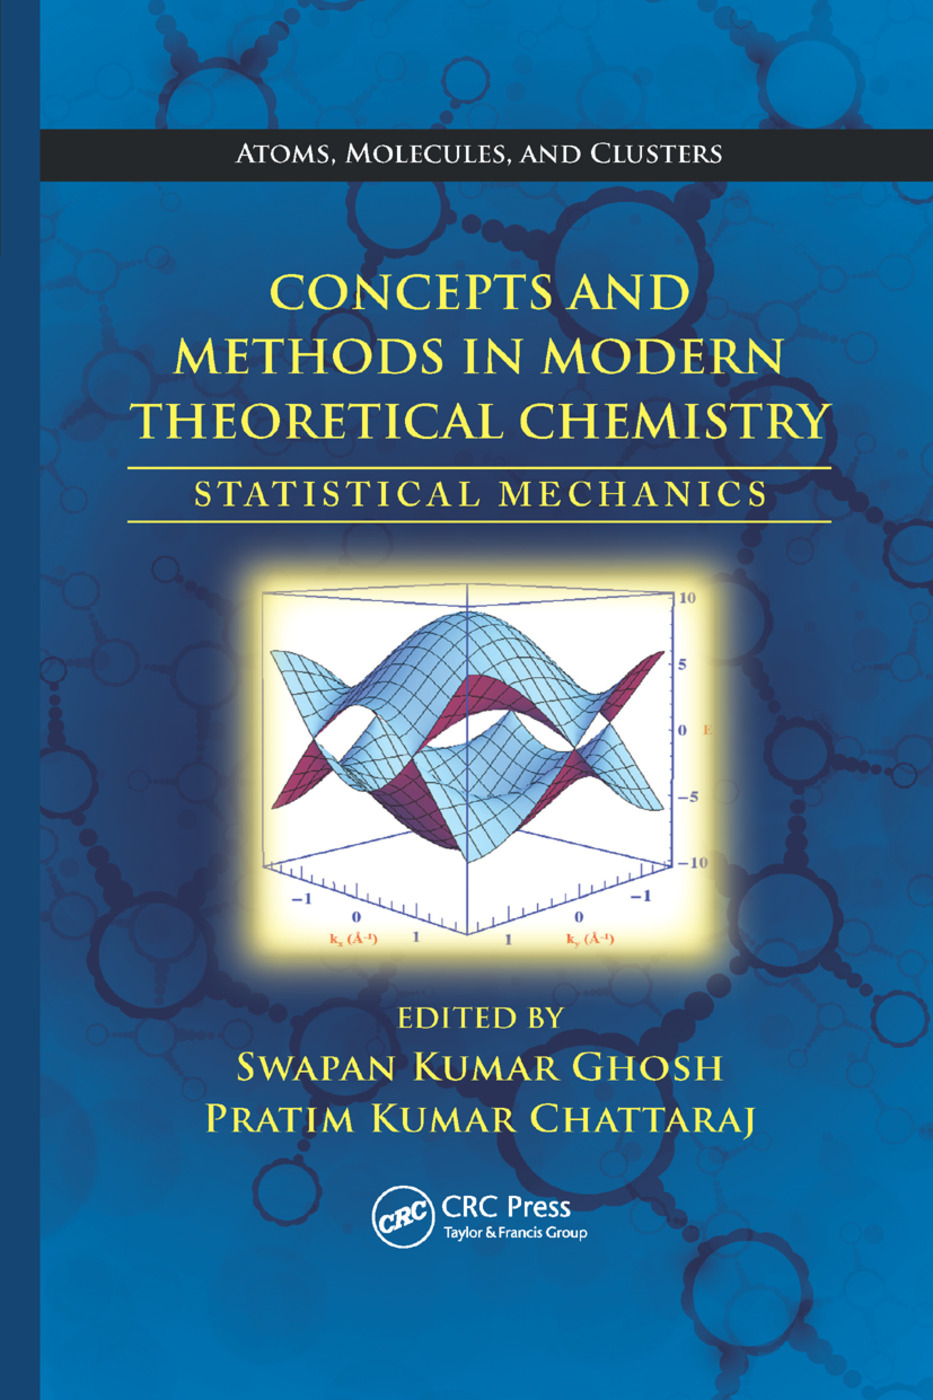 Concepts and Methods in Modern Theoretical Chemistry: Statistical Mechanics book cover